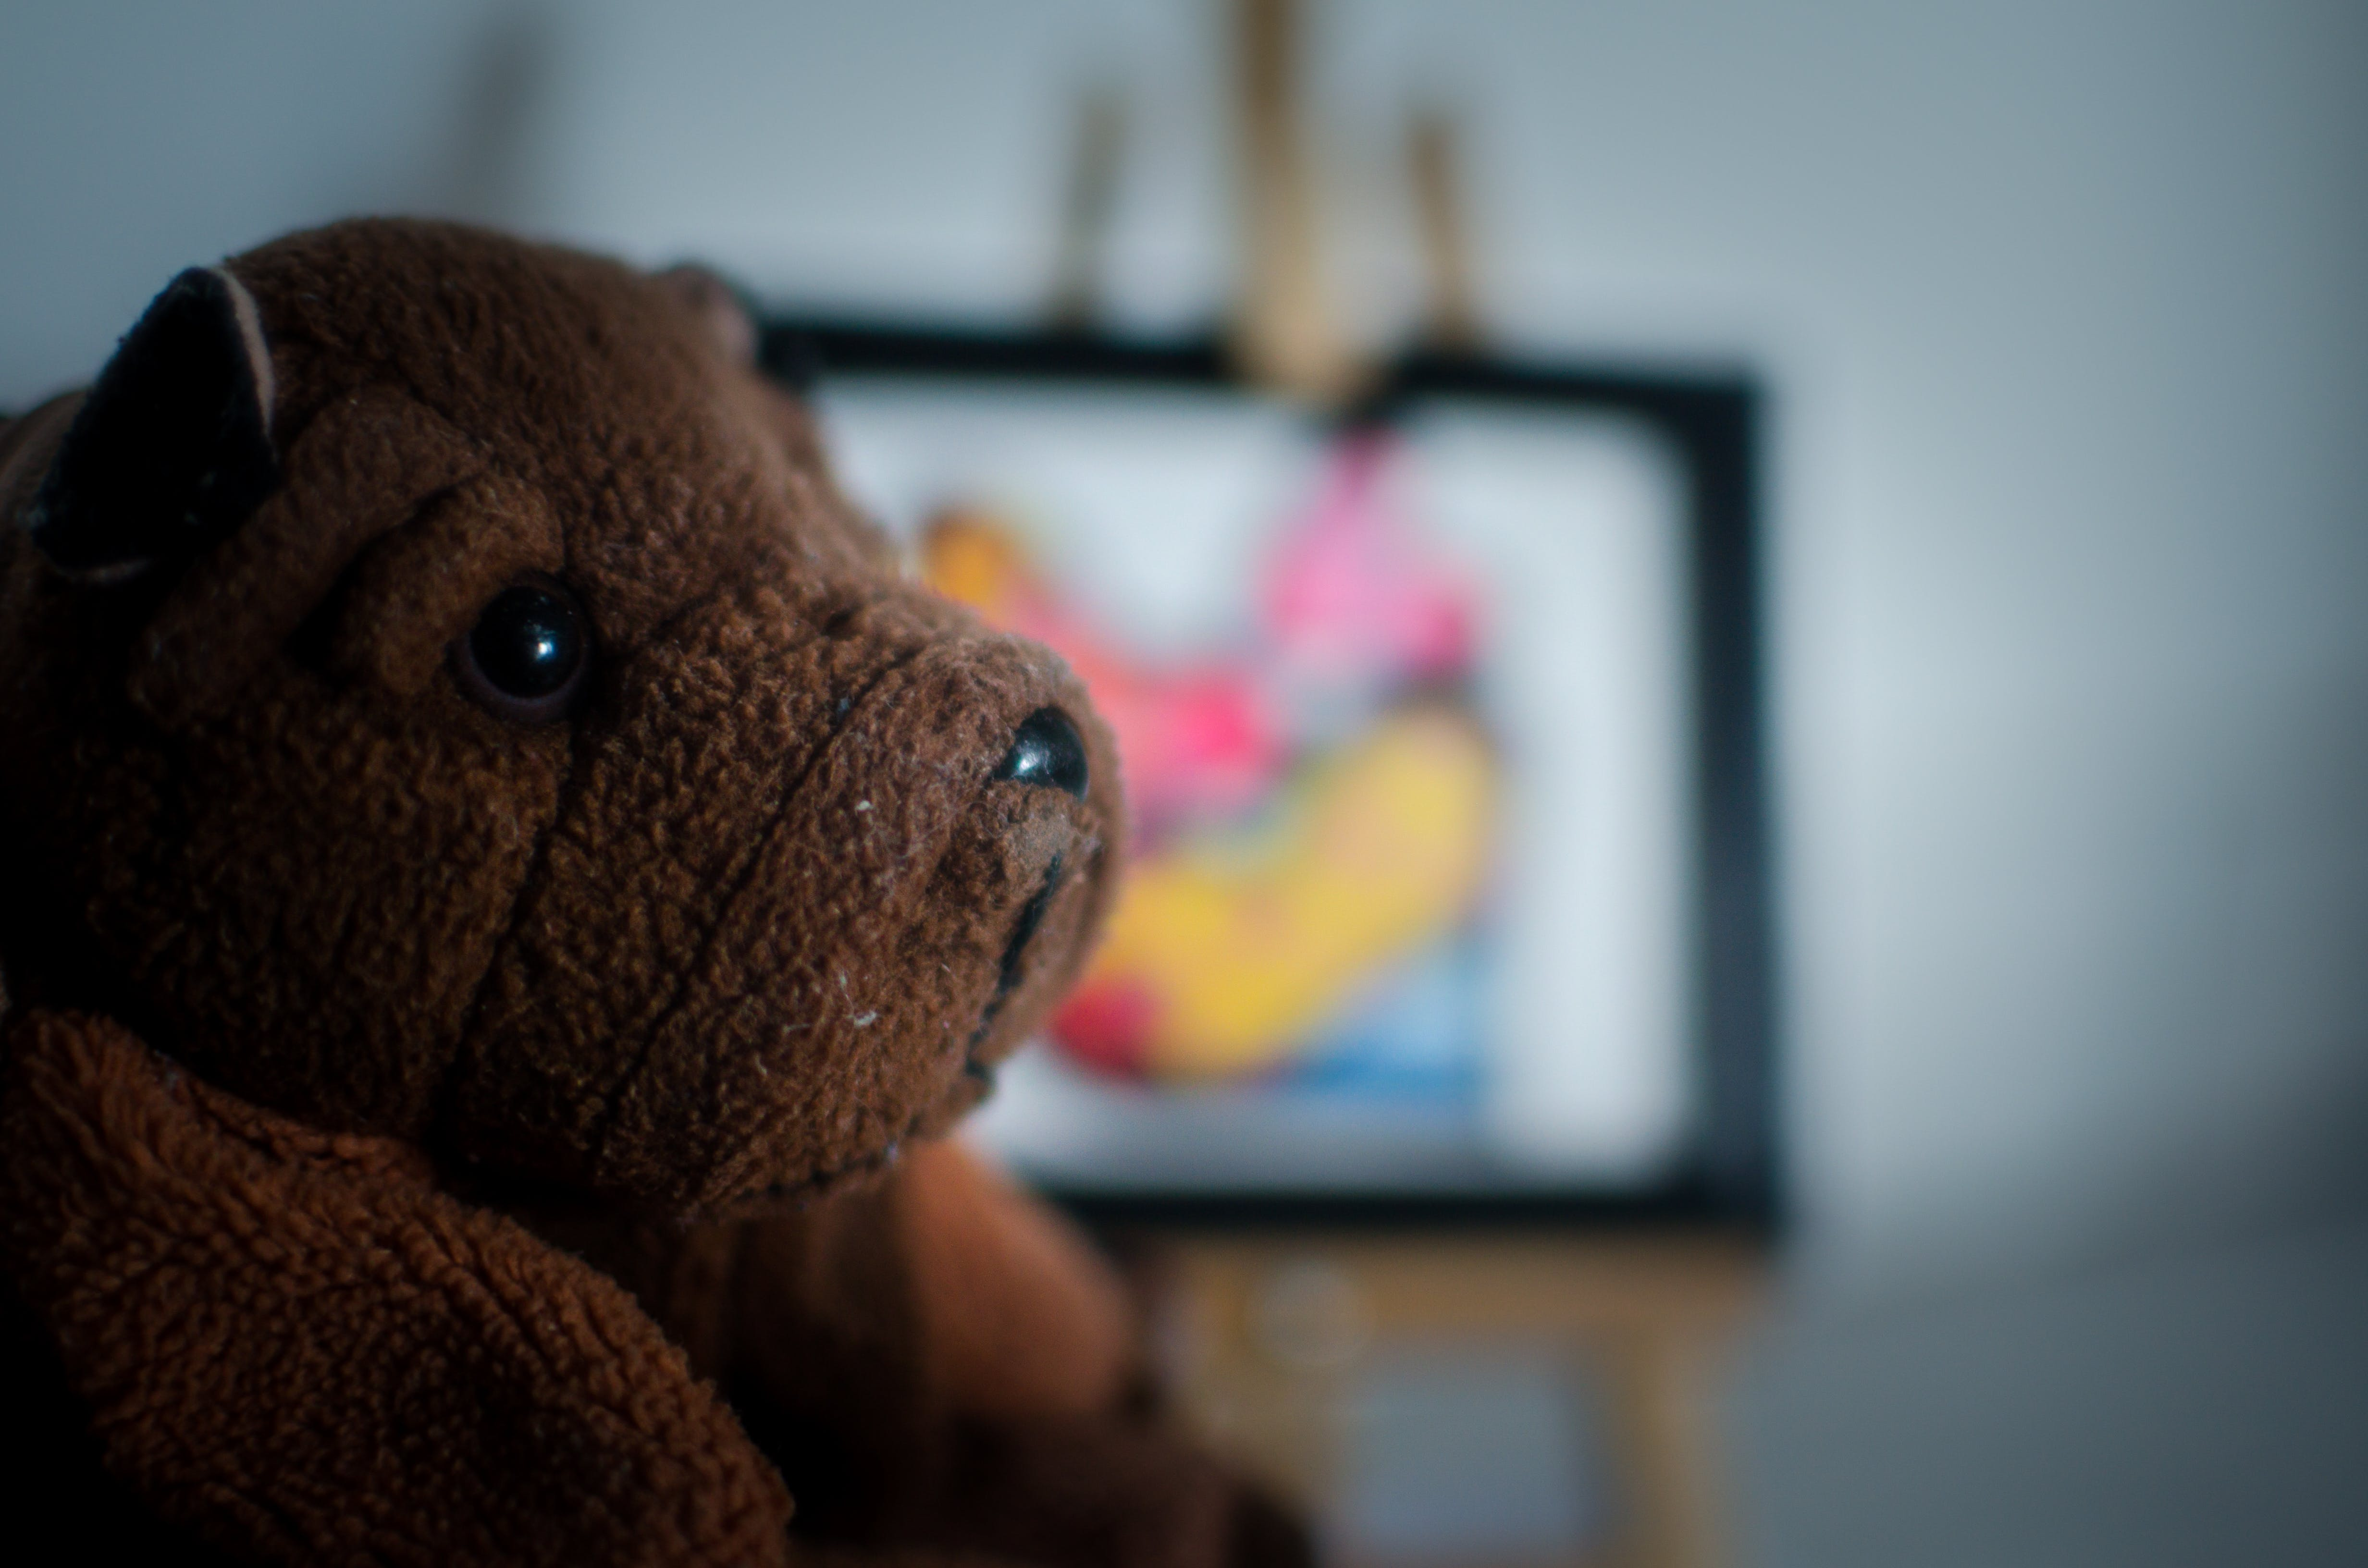 Free stock photo of portrait, bear, old, toy